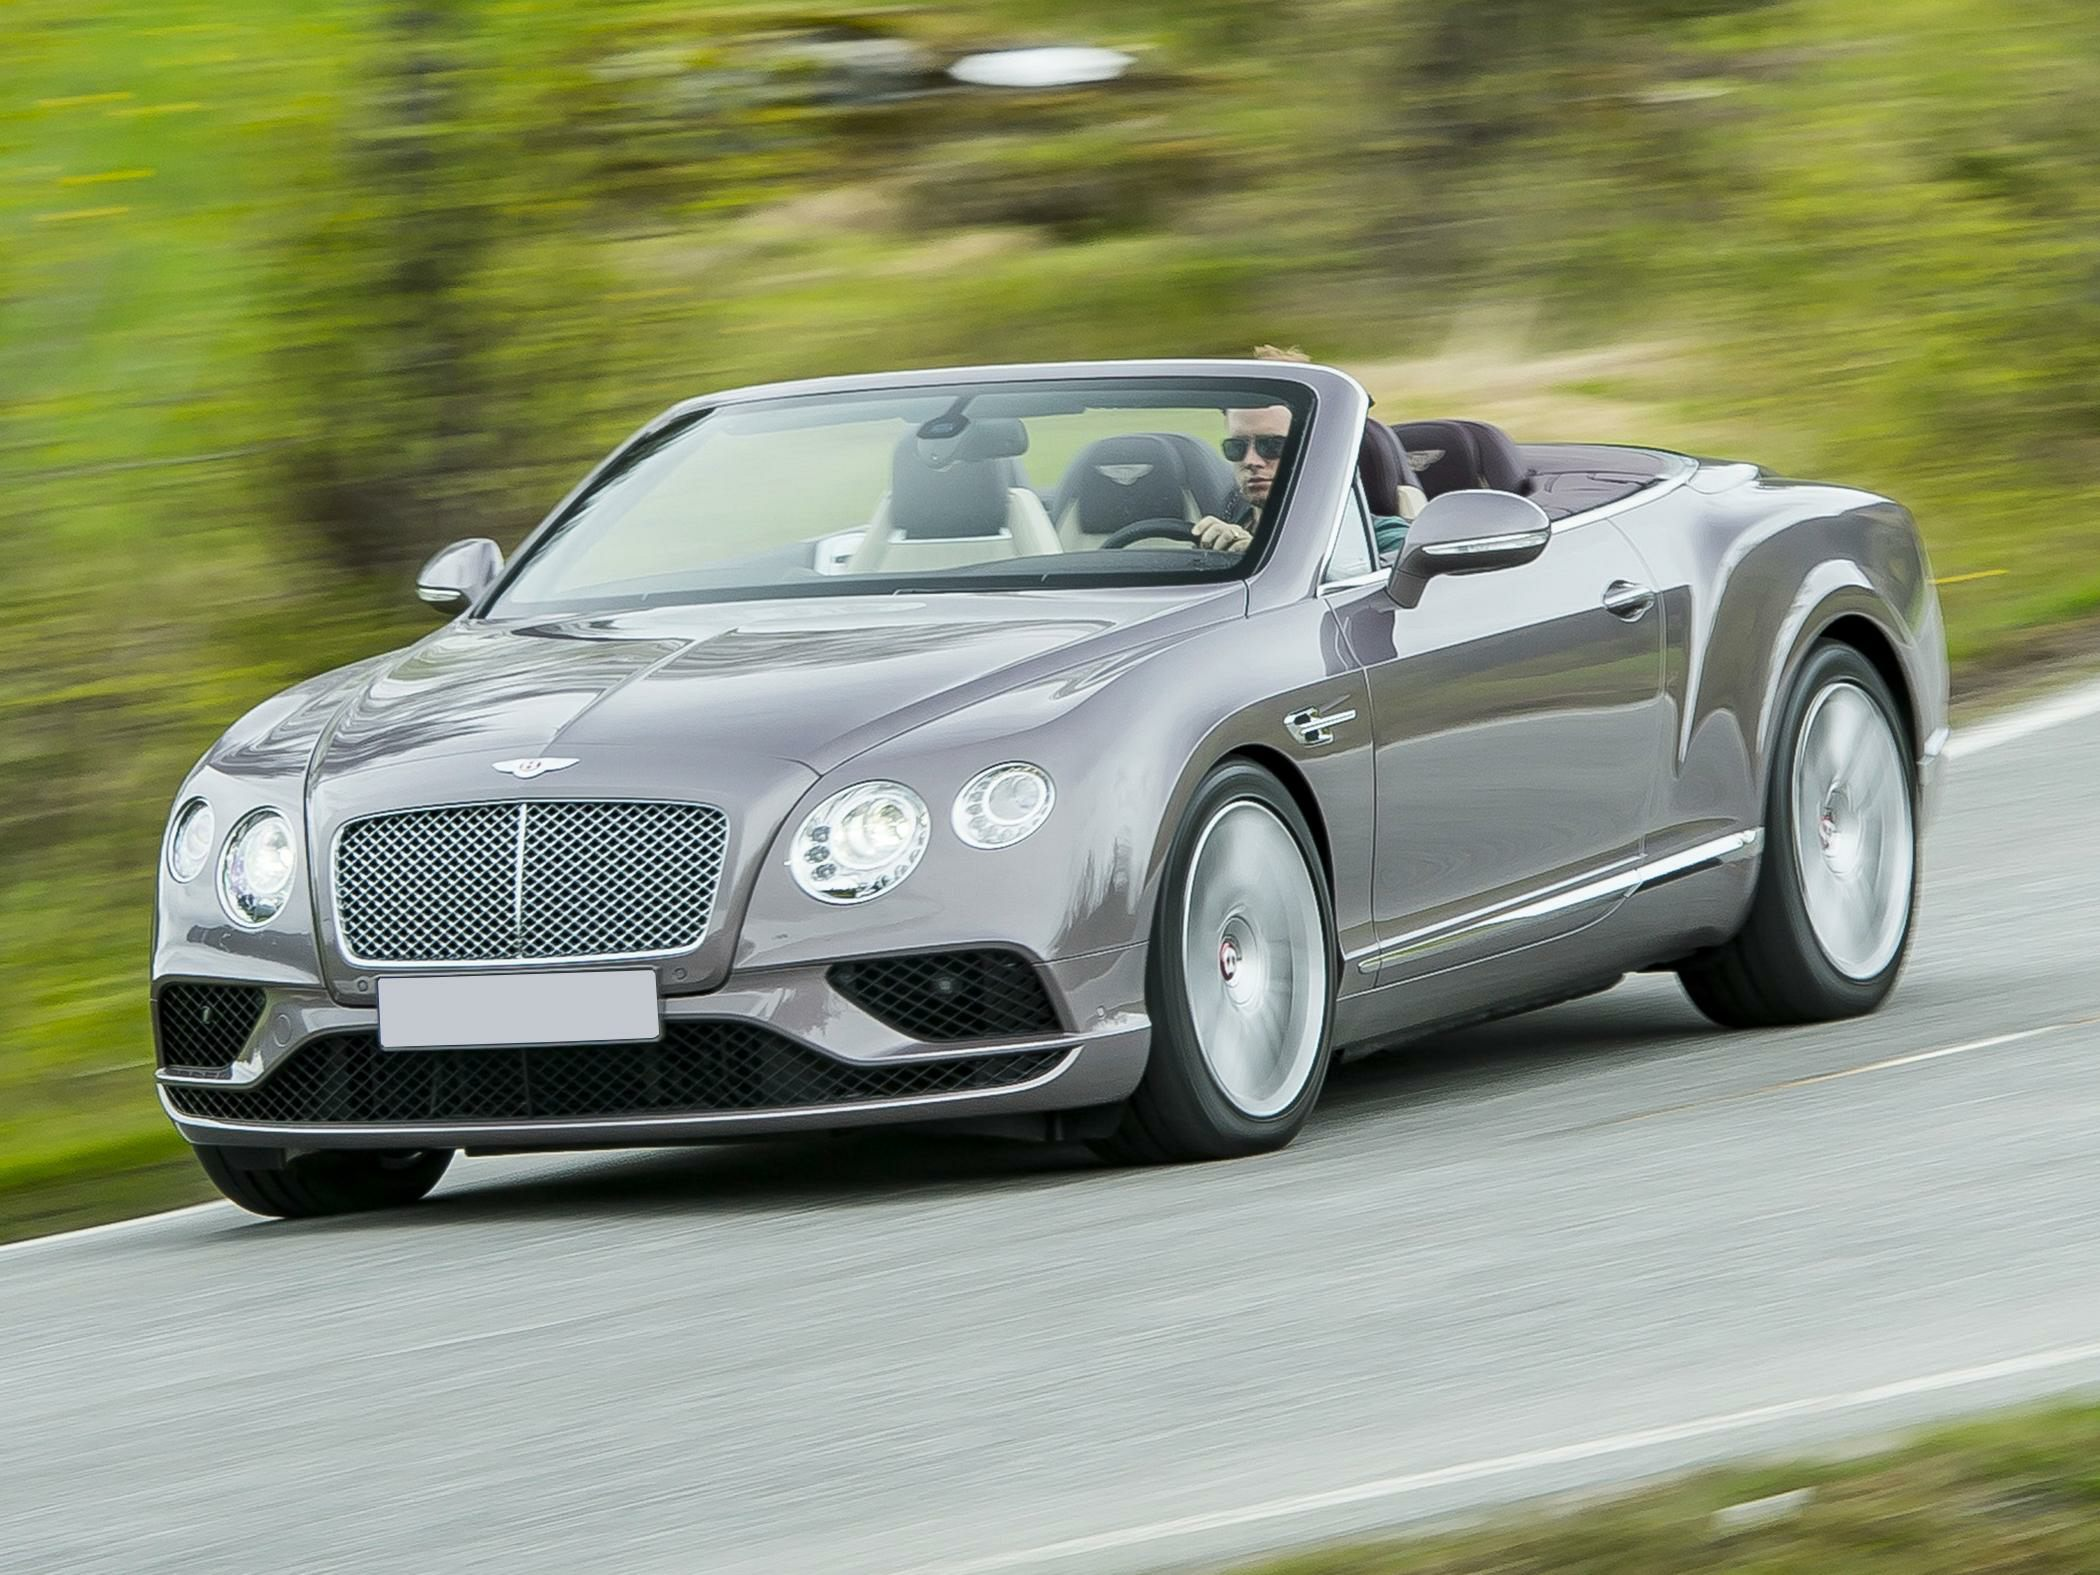 2018 Bentley Continental GT vs Other Vehicles Overview